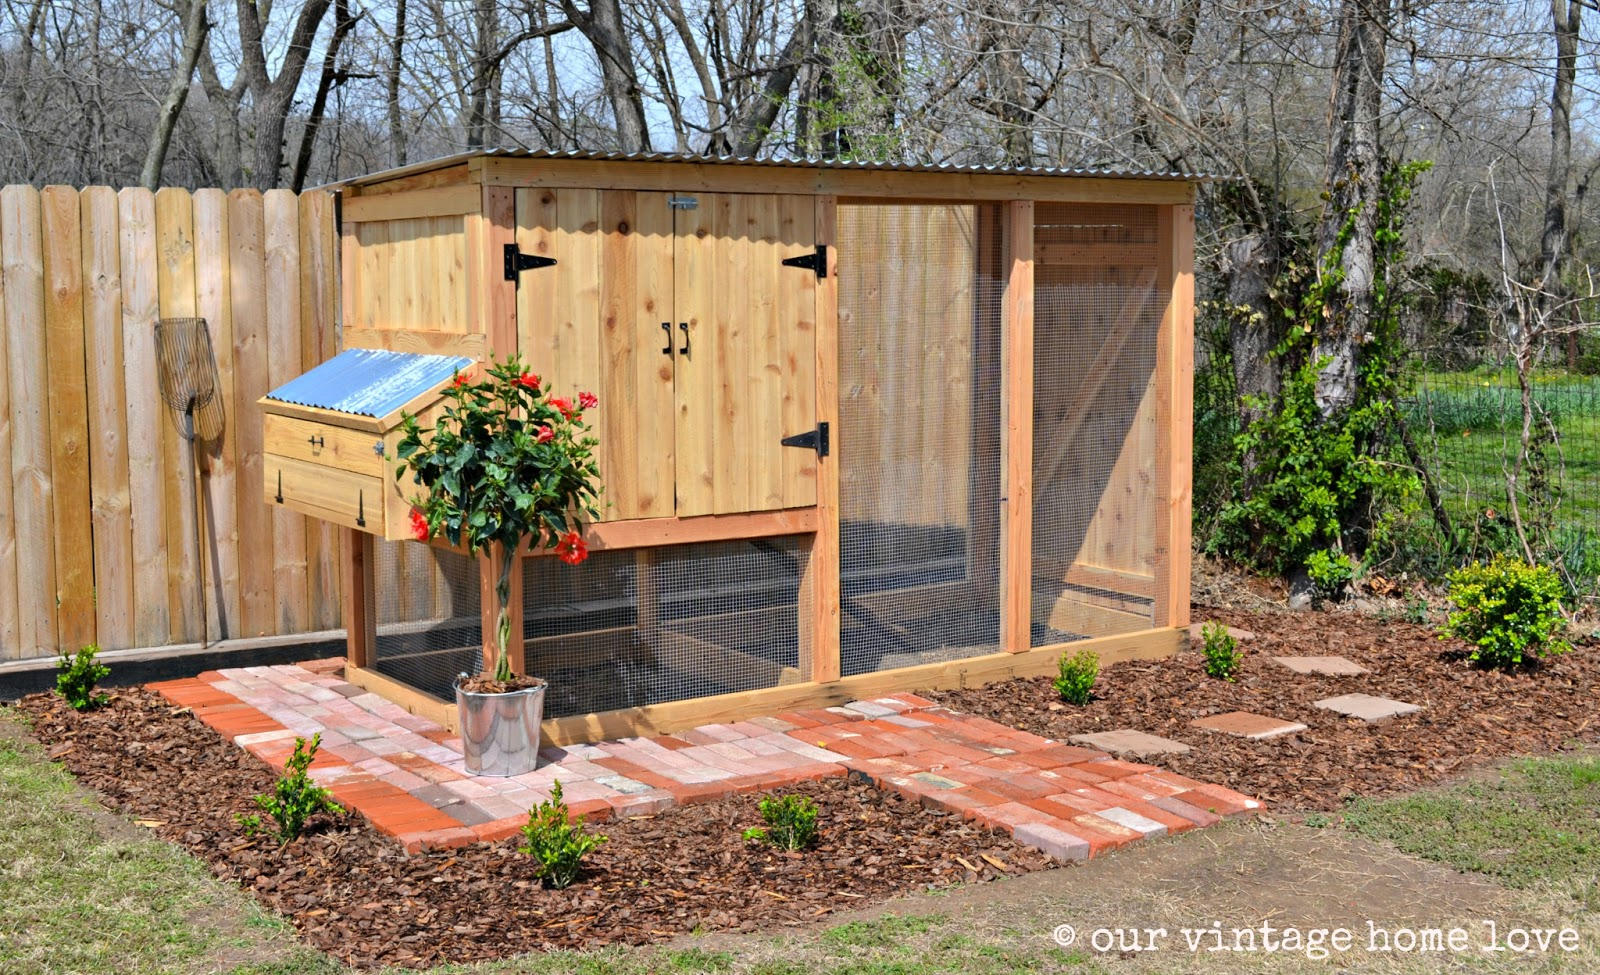 Vintage Home Love: Our New Coop